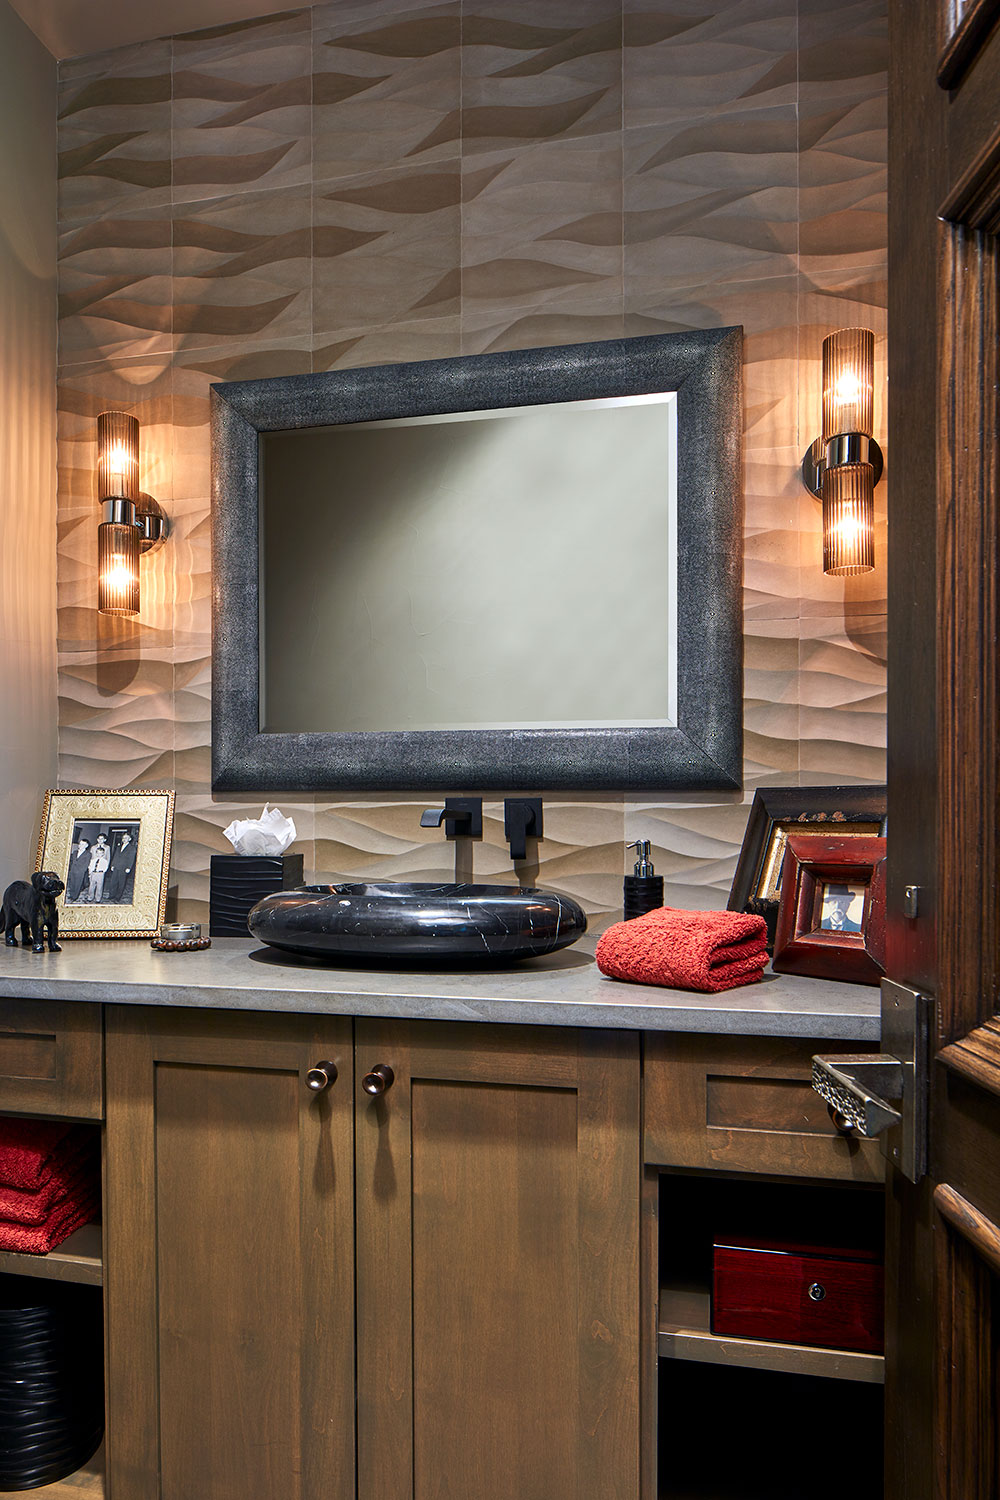 Like waves gently flowing across a pond, this sandstone tile backspalsh introduces motion and energy to the powder room in the husband's study/entertainment room.